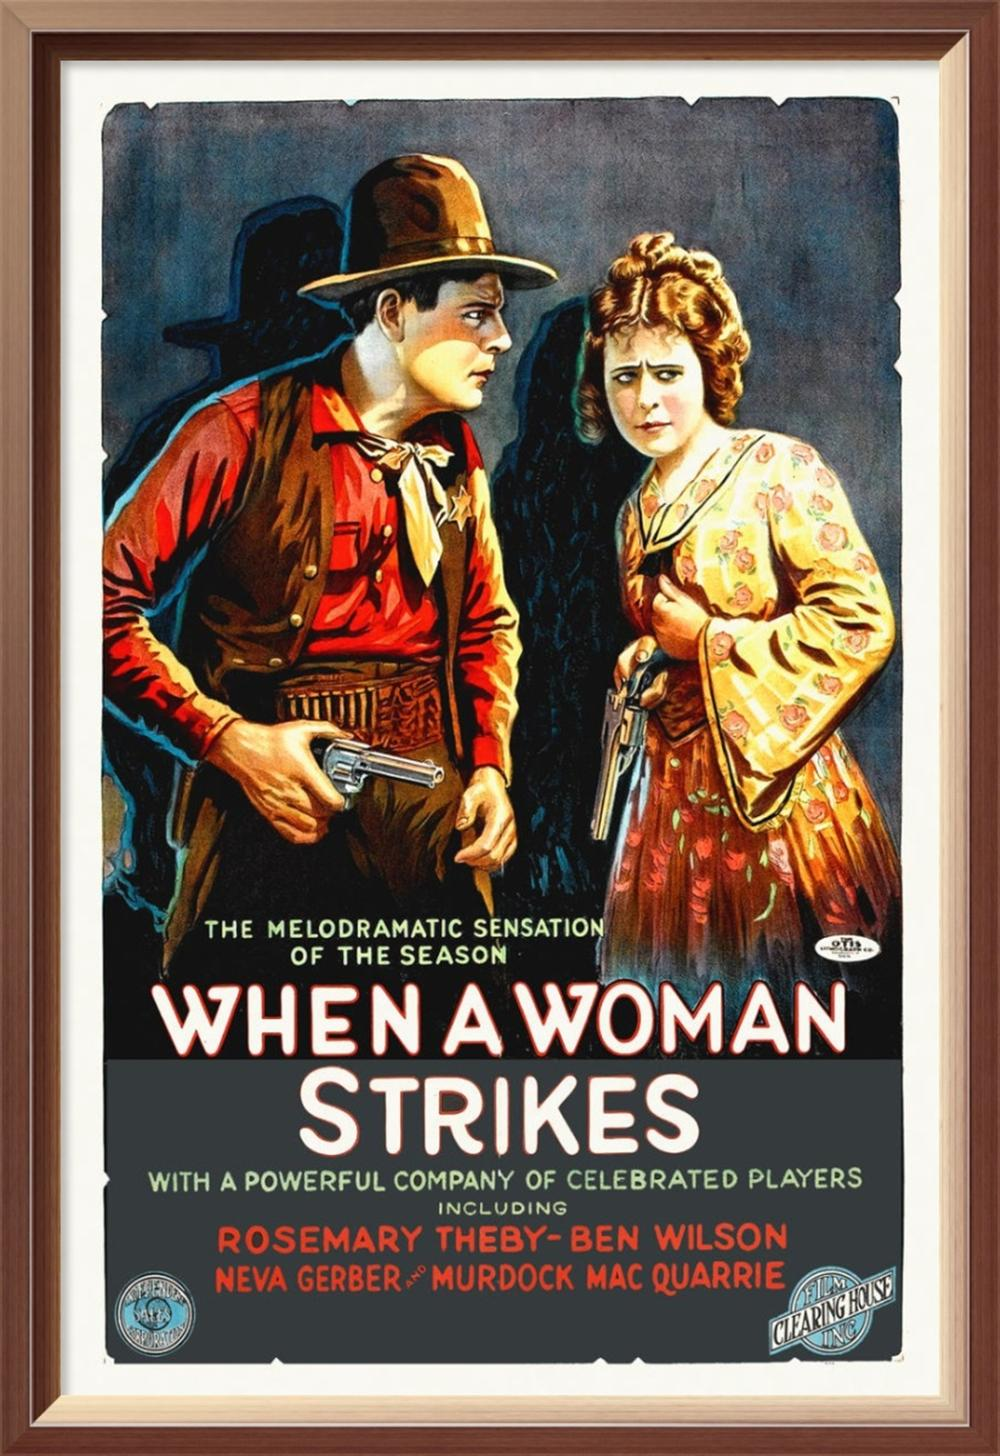 HOLLYWOOD PHOTO ARCHIVE - WHEN A WOMAN STRIKES, 1919